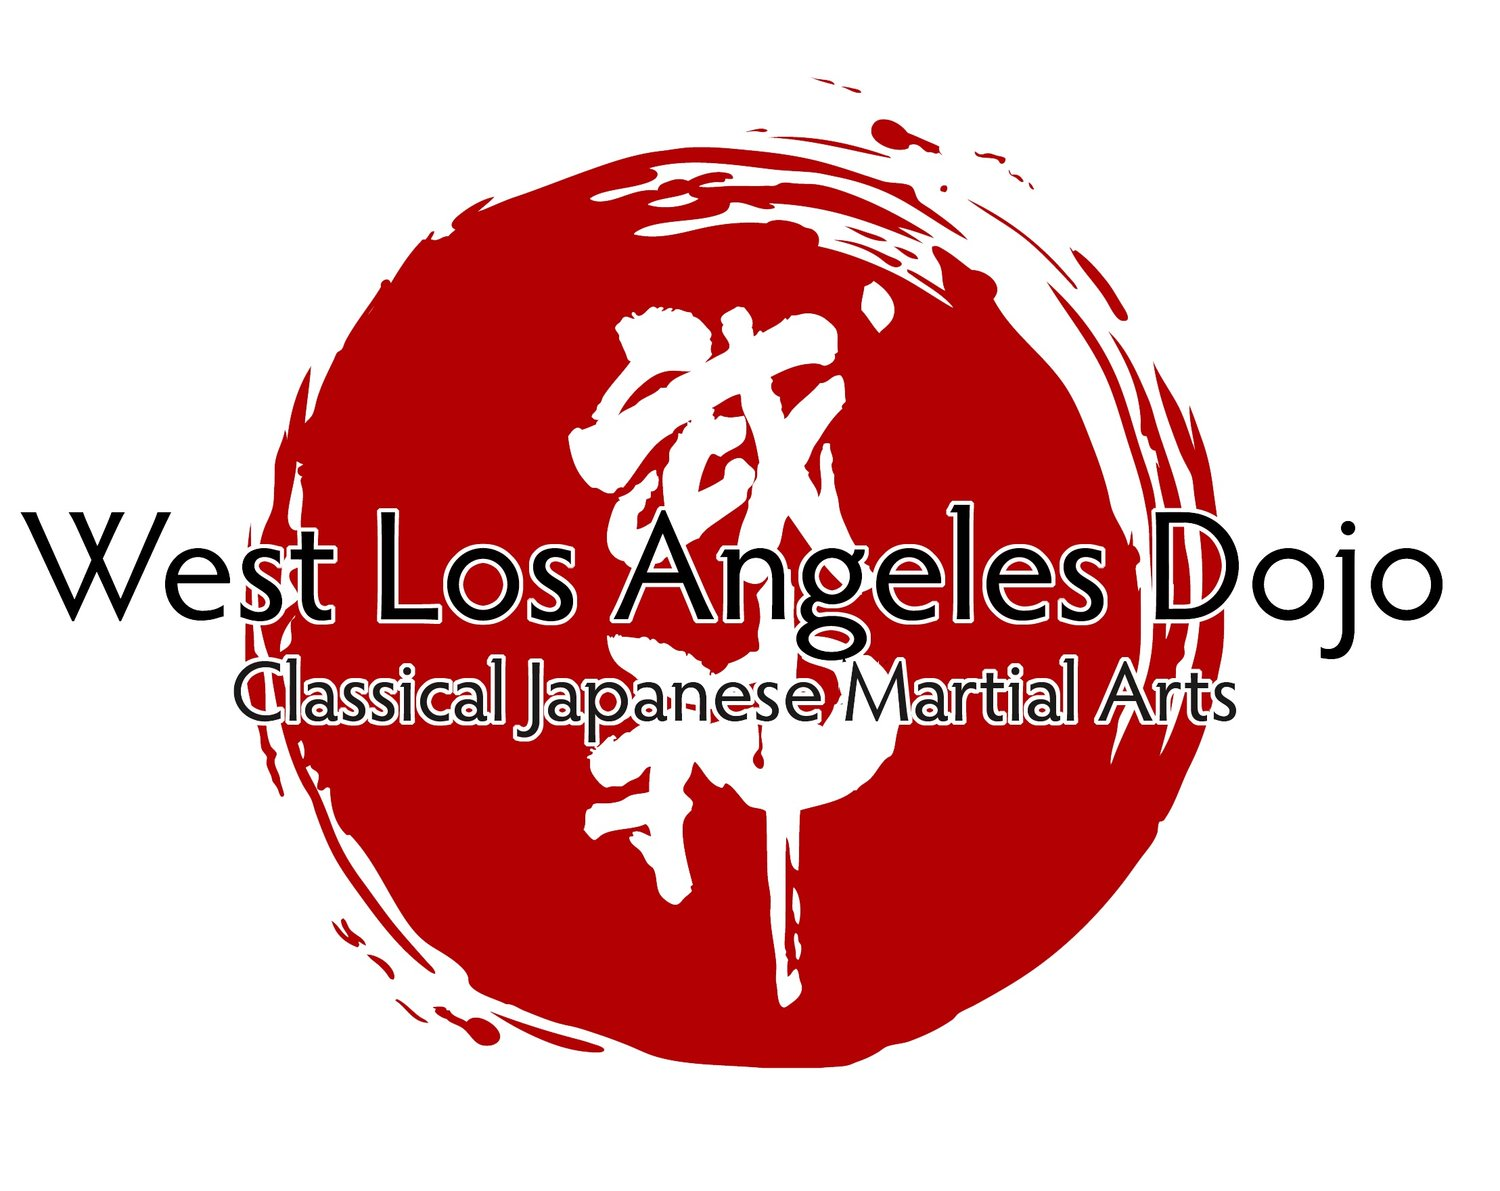 West Los Angeles Dojo